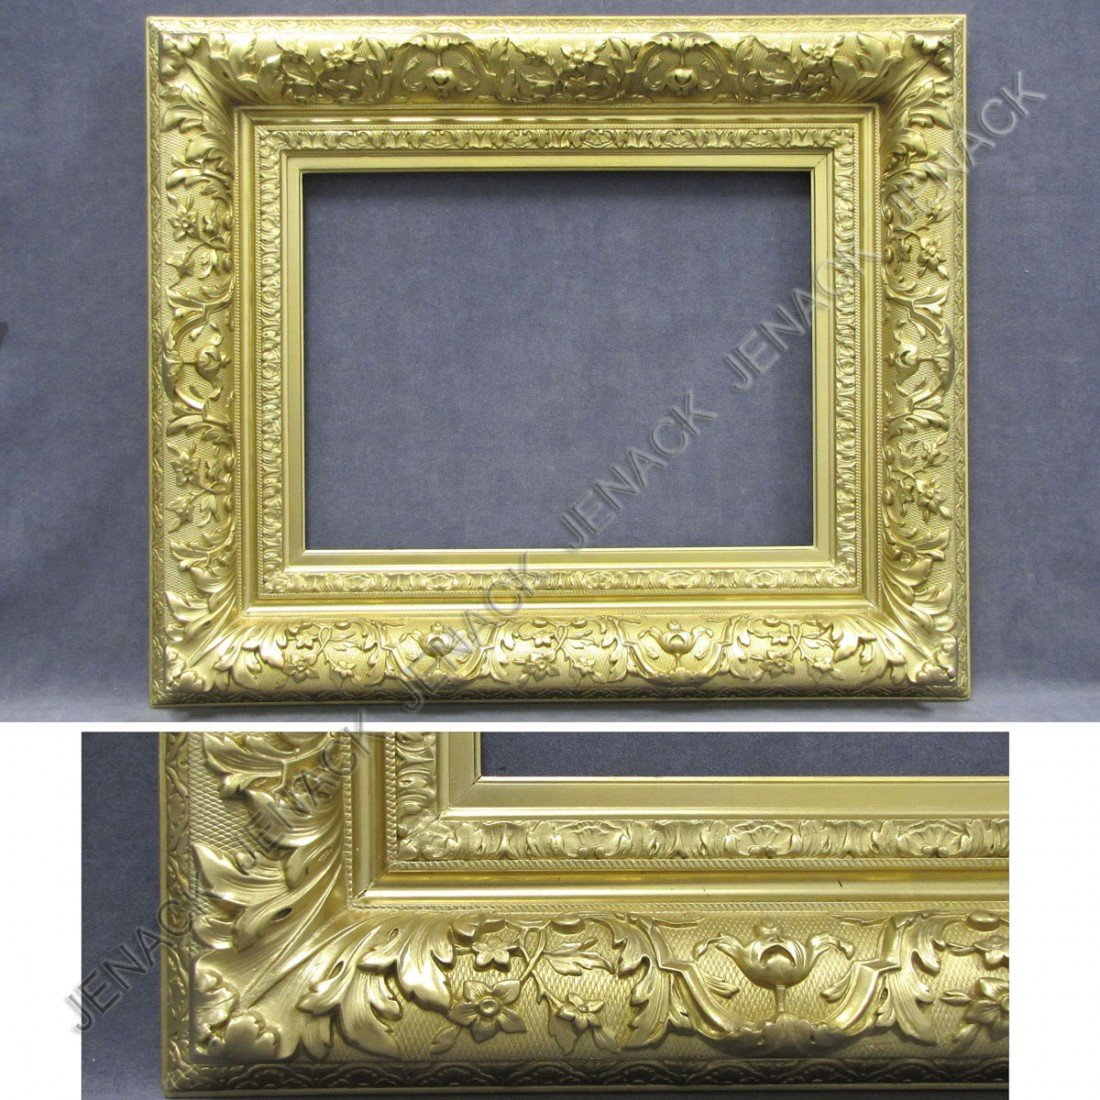 24: EUROPEAN NEO CLASSICAL CARVED AND GILT FRAME